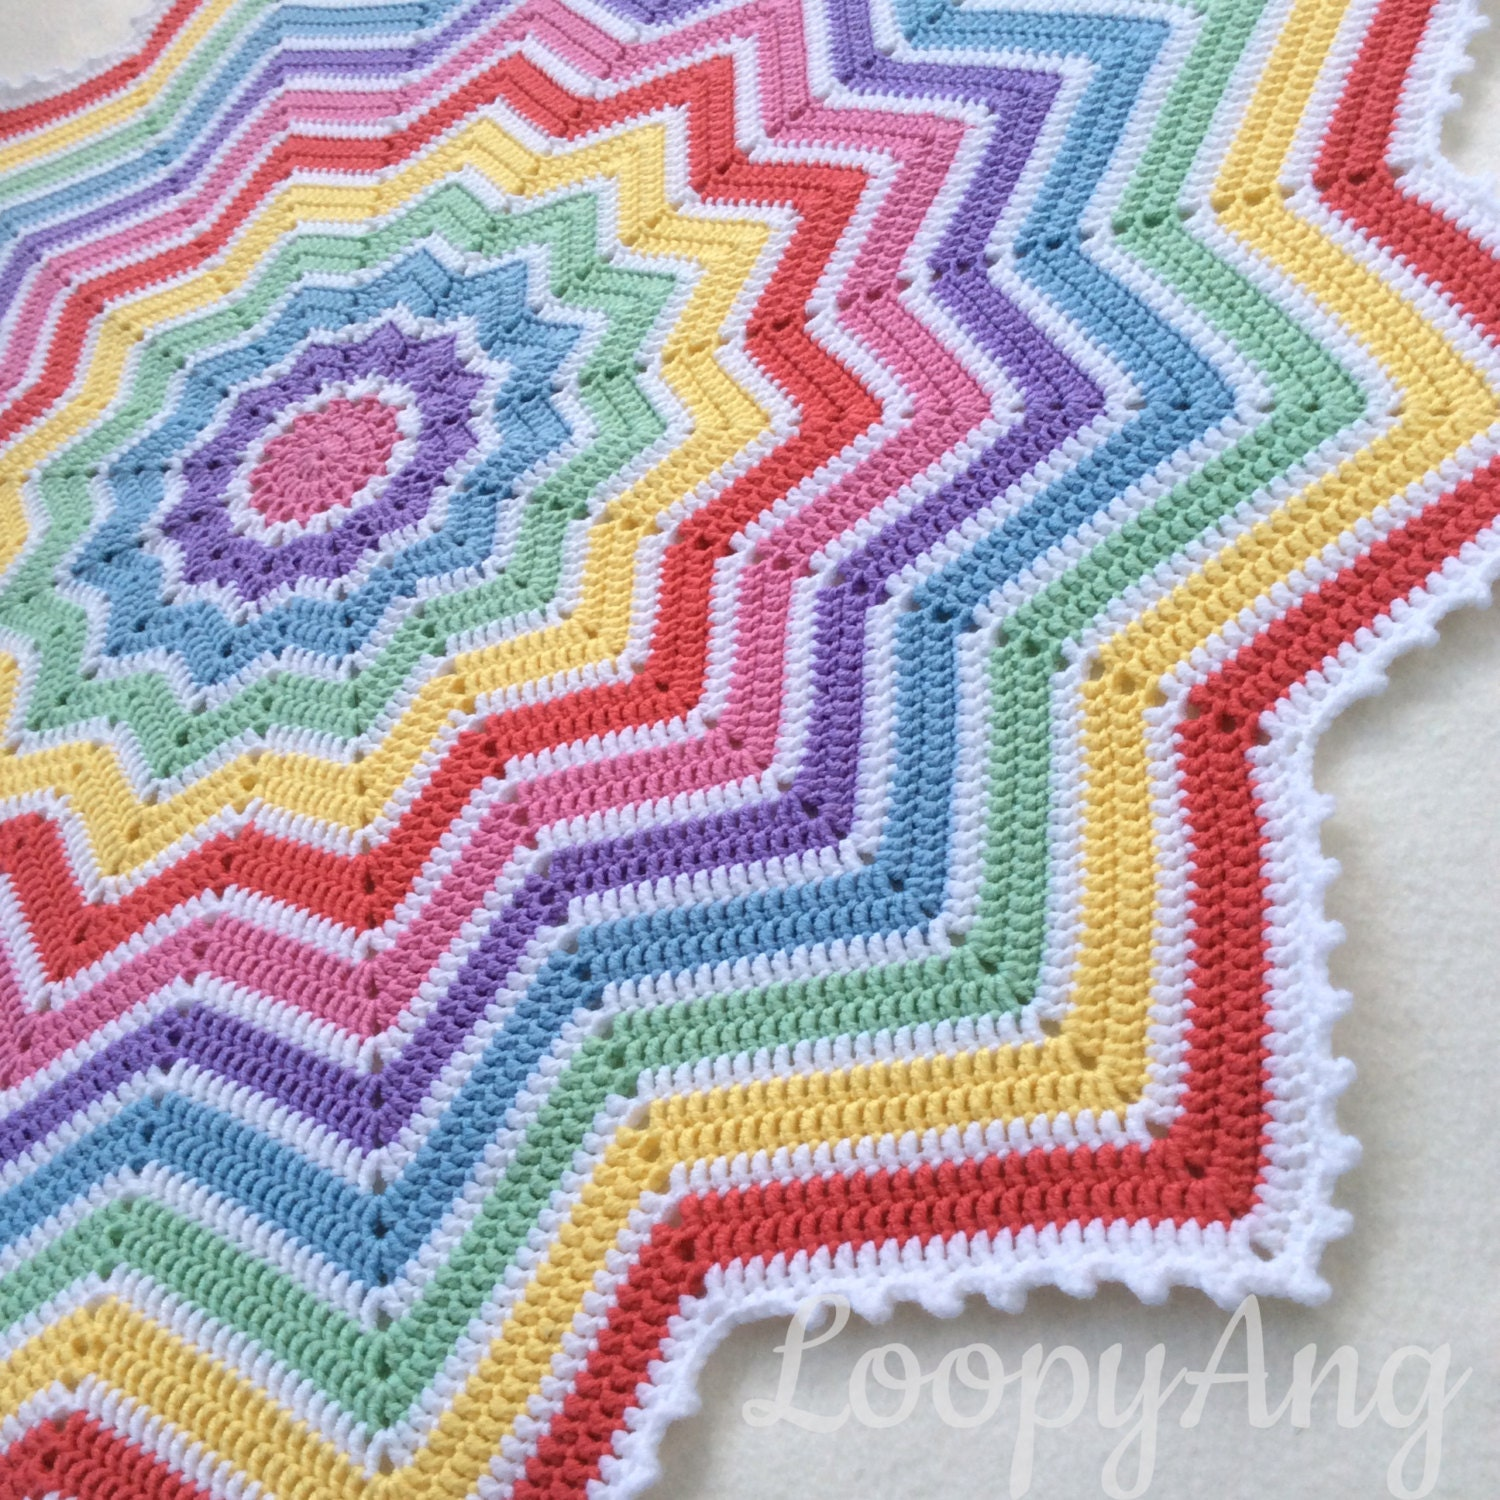 Crochet Rainbow Baby Blanket 12 Pointed Star Afghan Etsy